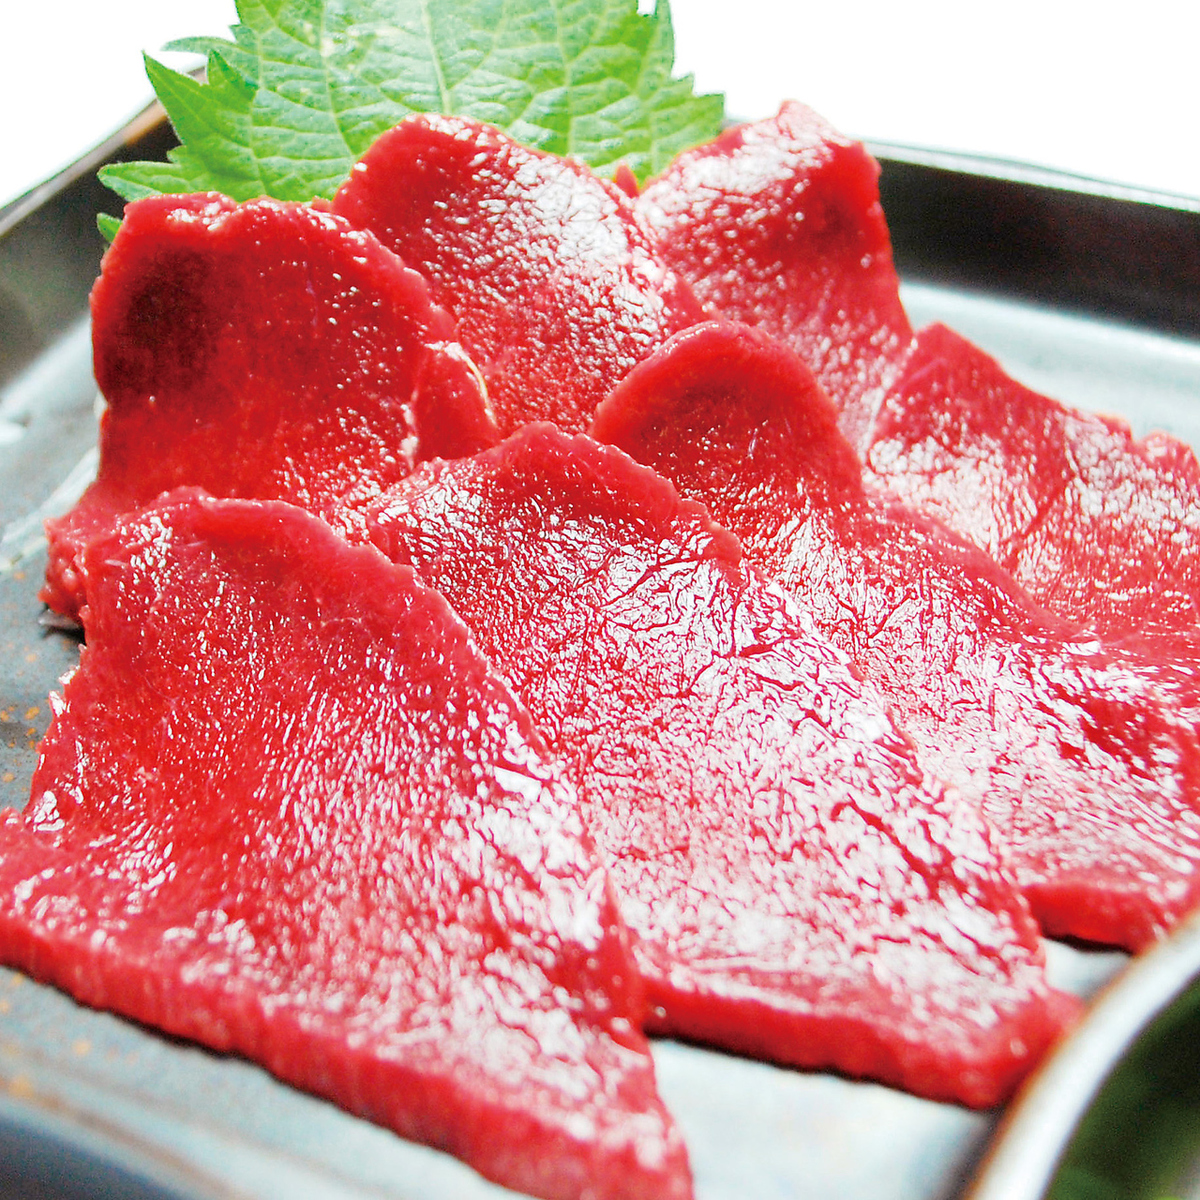 Selected horse meat sashimi (thin frost)